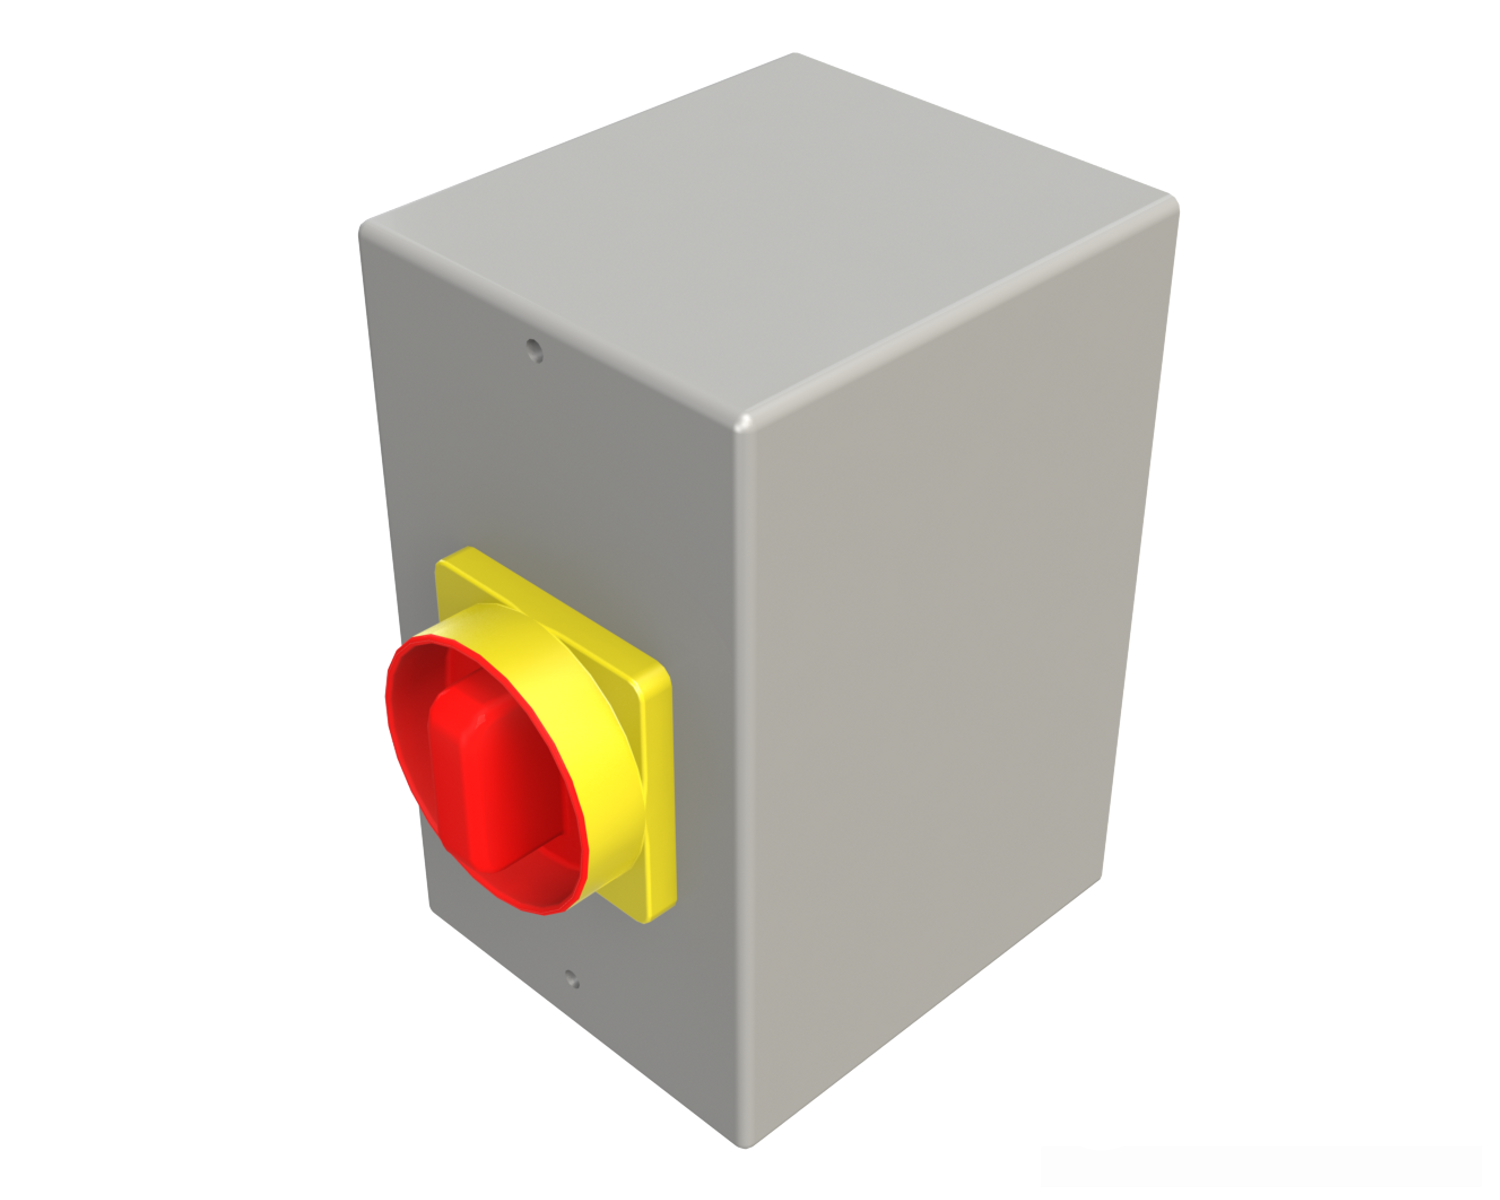 The Motor Disconnect provides a lock out point at the motor, and a convenient access point for wiring during installation. This should not be used to start and stop the motor. It is not for use as overload protection.